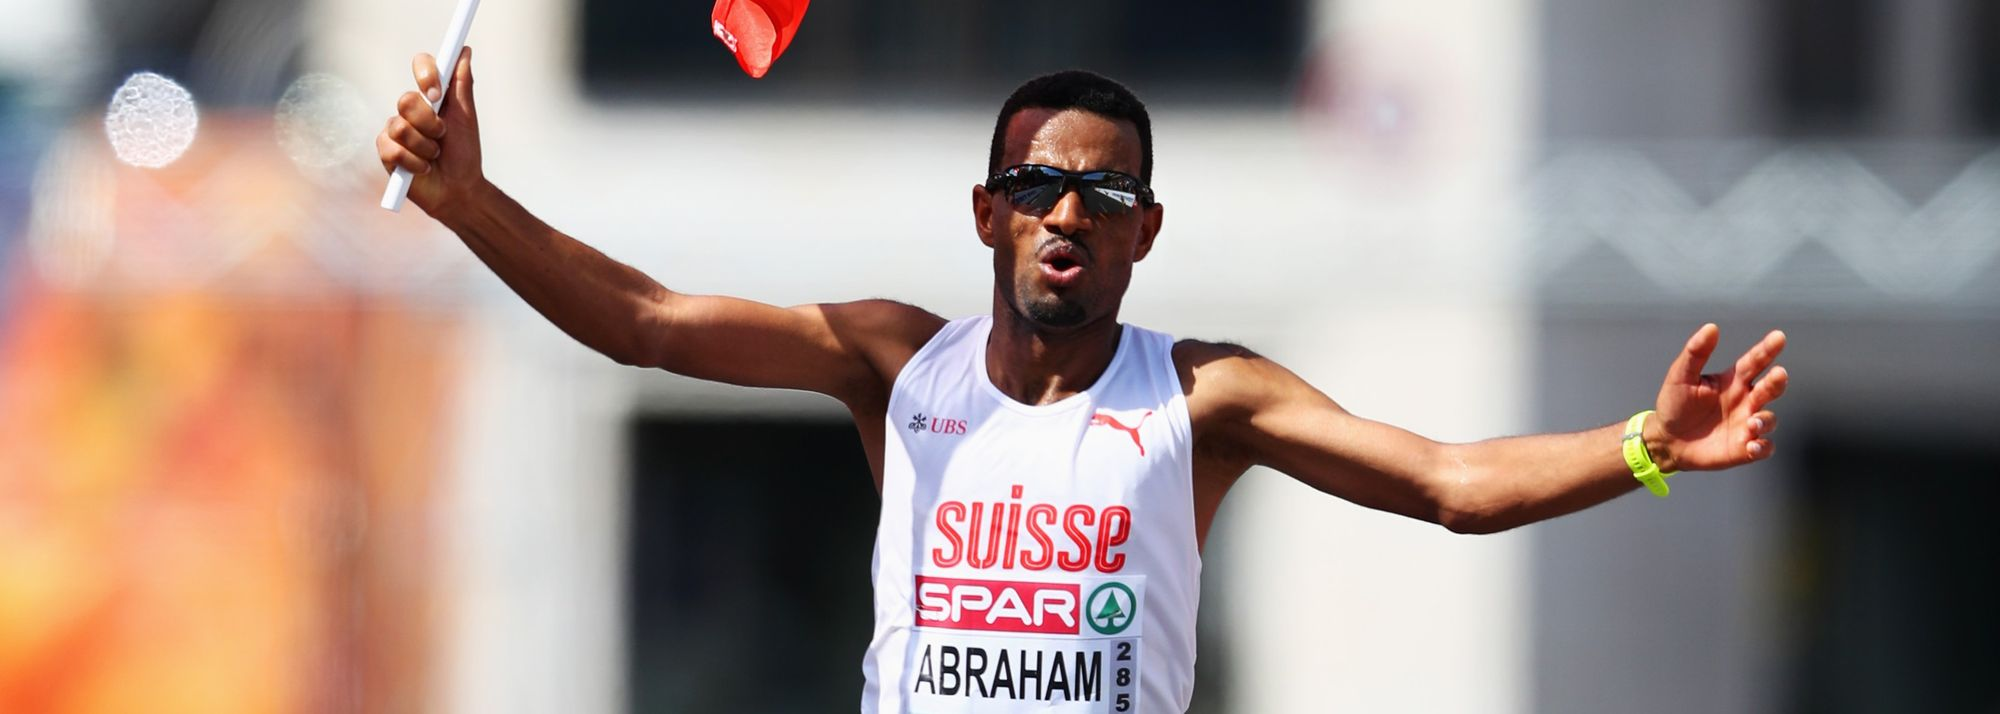 It would be understandable for anyone to be fazed by the presence of an athlete like Eliud Kipchoge in their event. But for Tadesse Abraham, competing against the Kenyan icon is a modest challenge compared to what he faced as a young refugee.